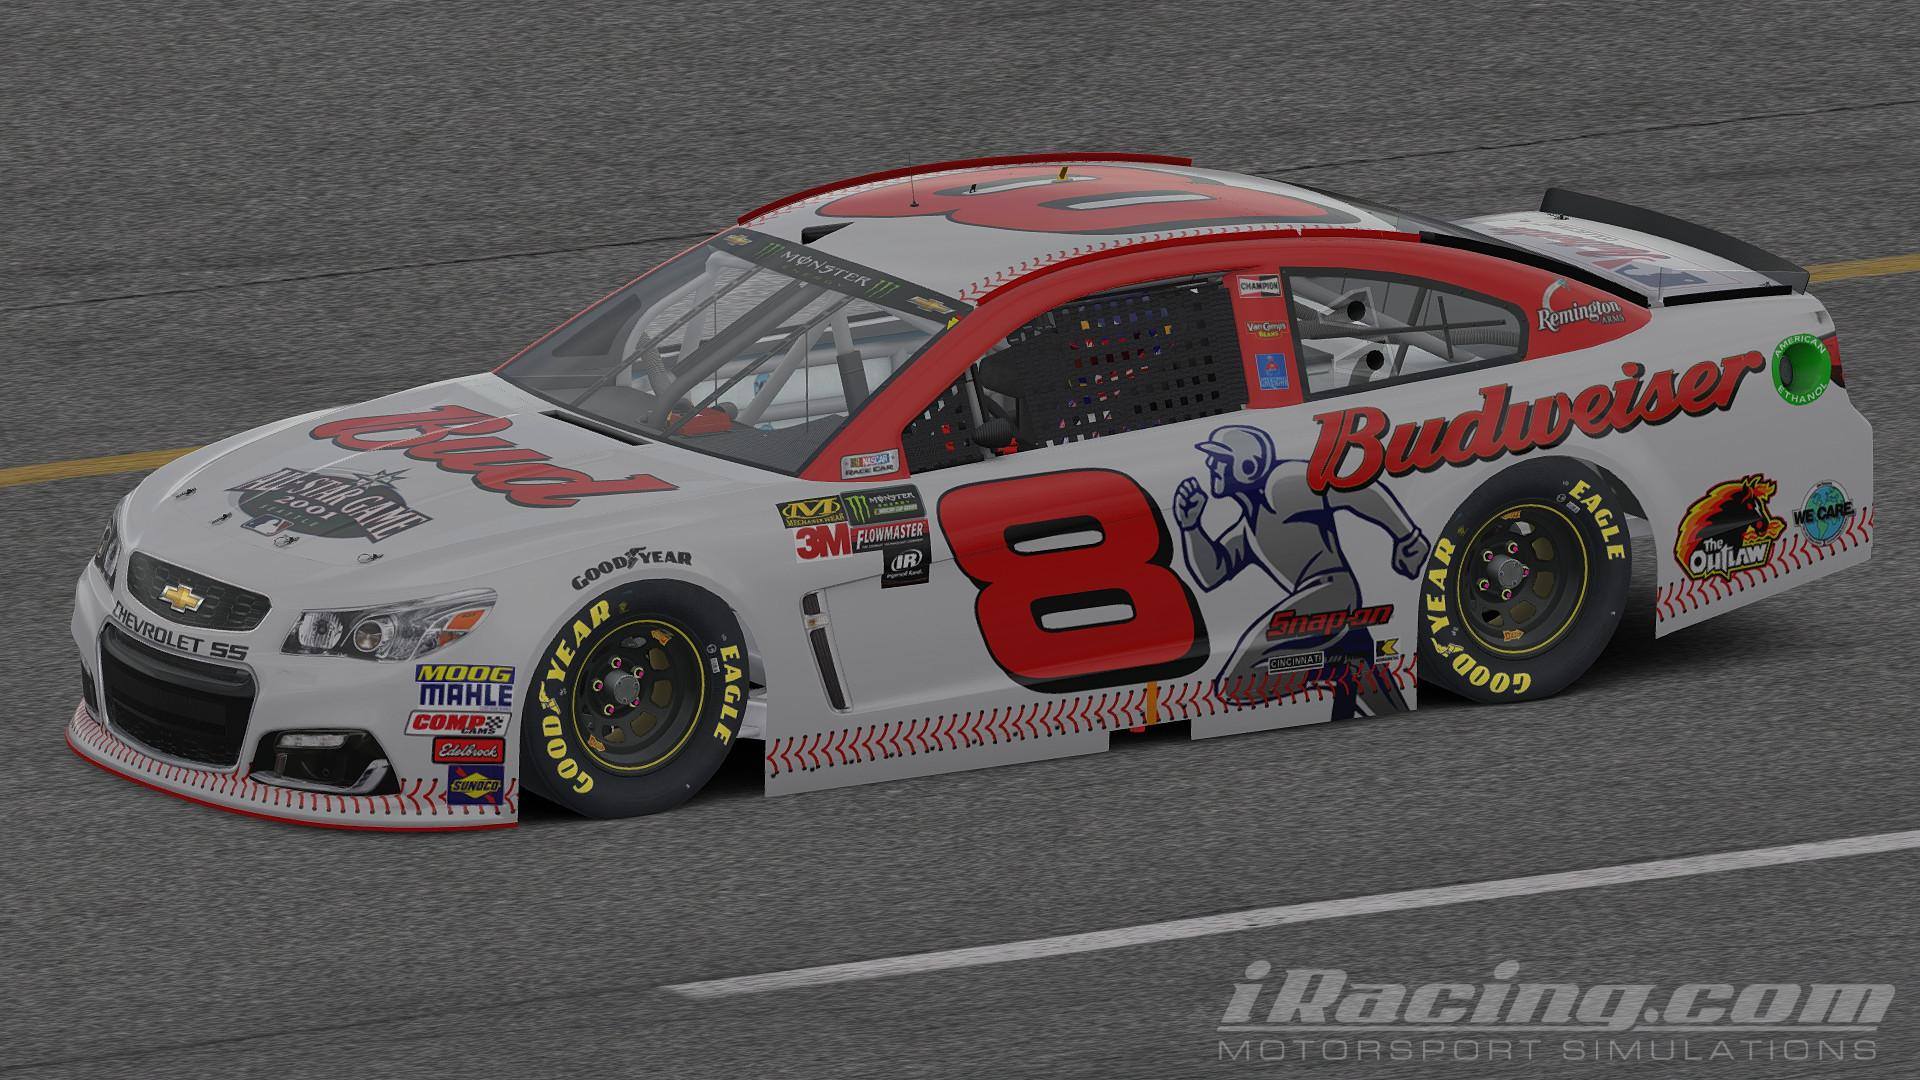 Preview of Budweiser 2001 Pepsi 400 by Scott Pierchorowicz